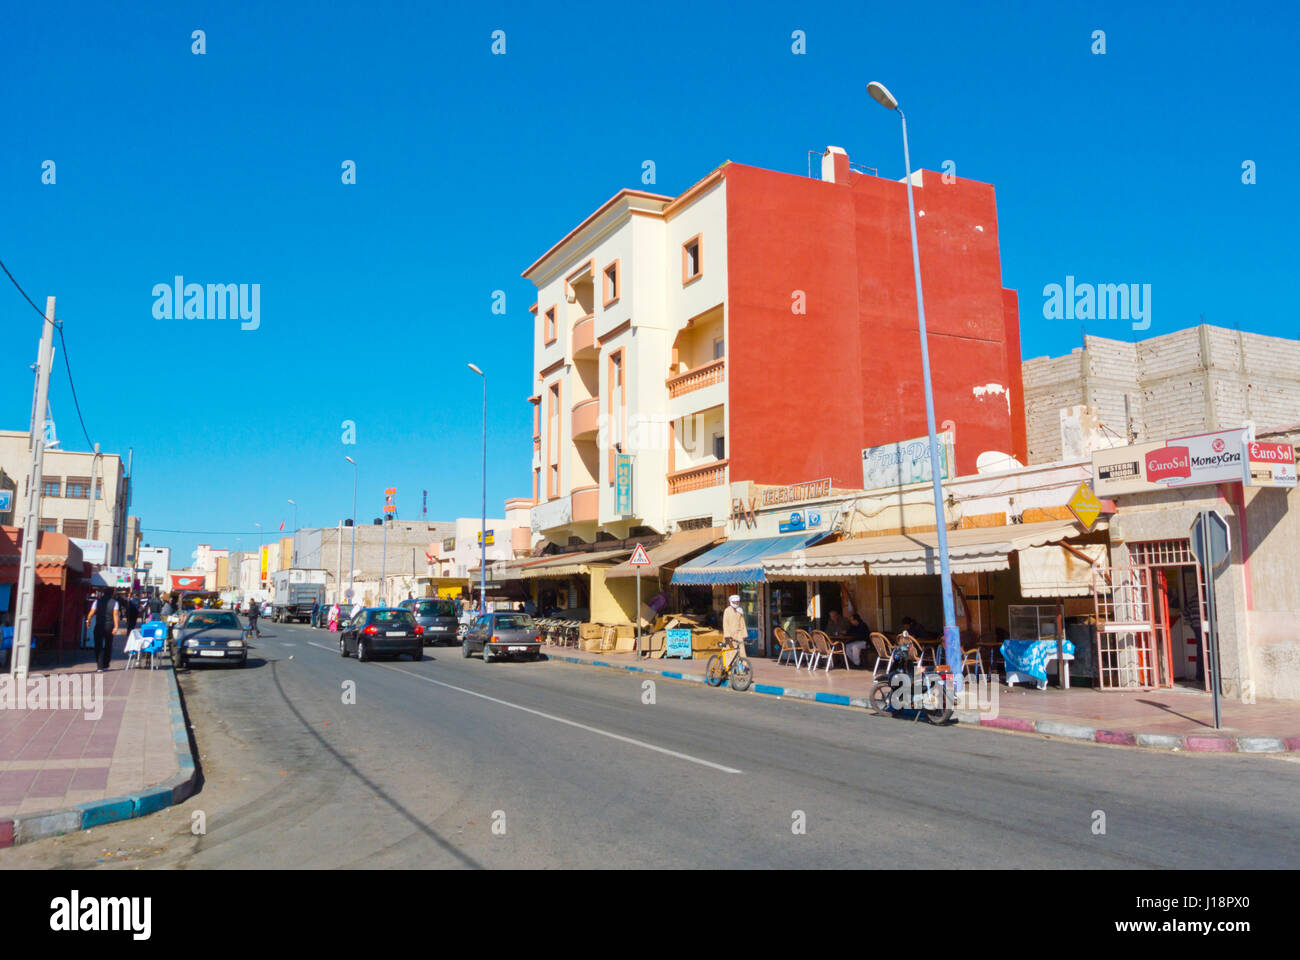 Dakhla, Western Sahara, administered by Morocco, Africa - Stock Image